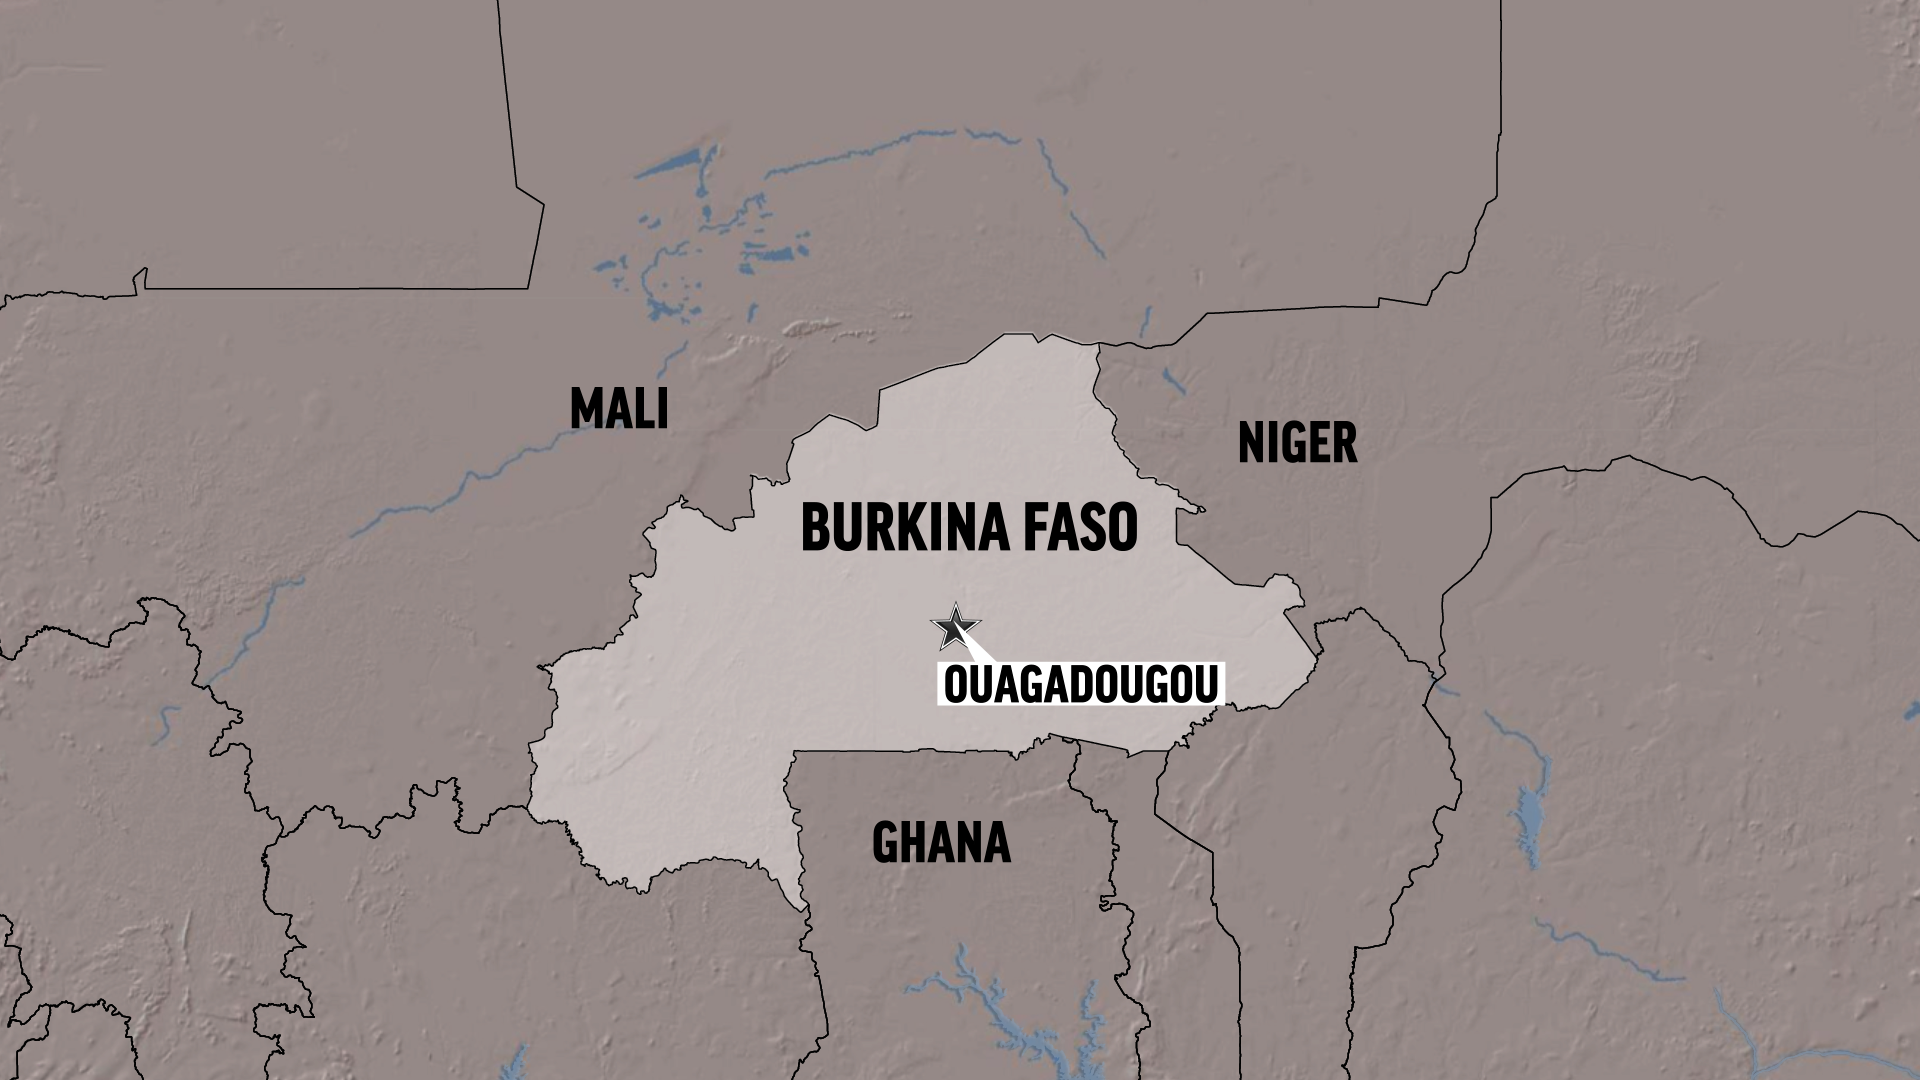 Gunmen attack Turkish restaurant in Burkina Faso capital: Reuters witness